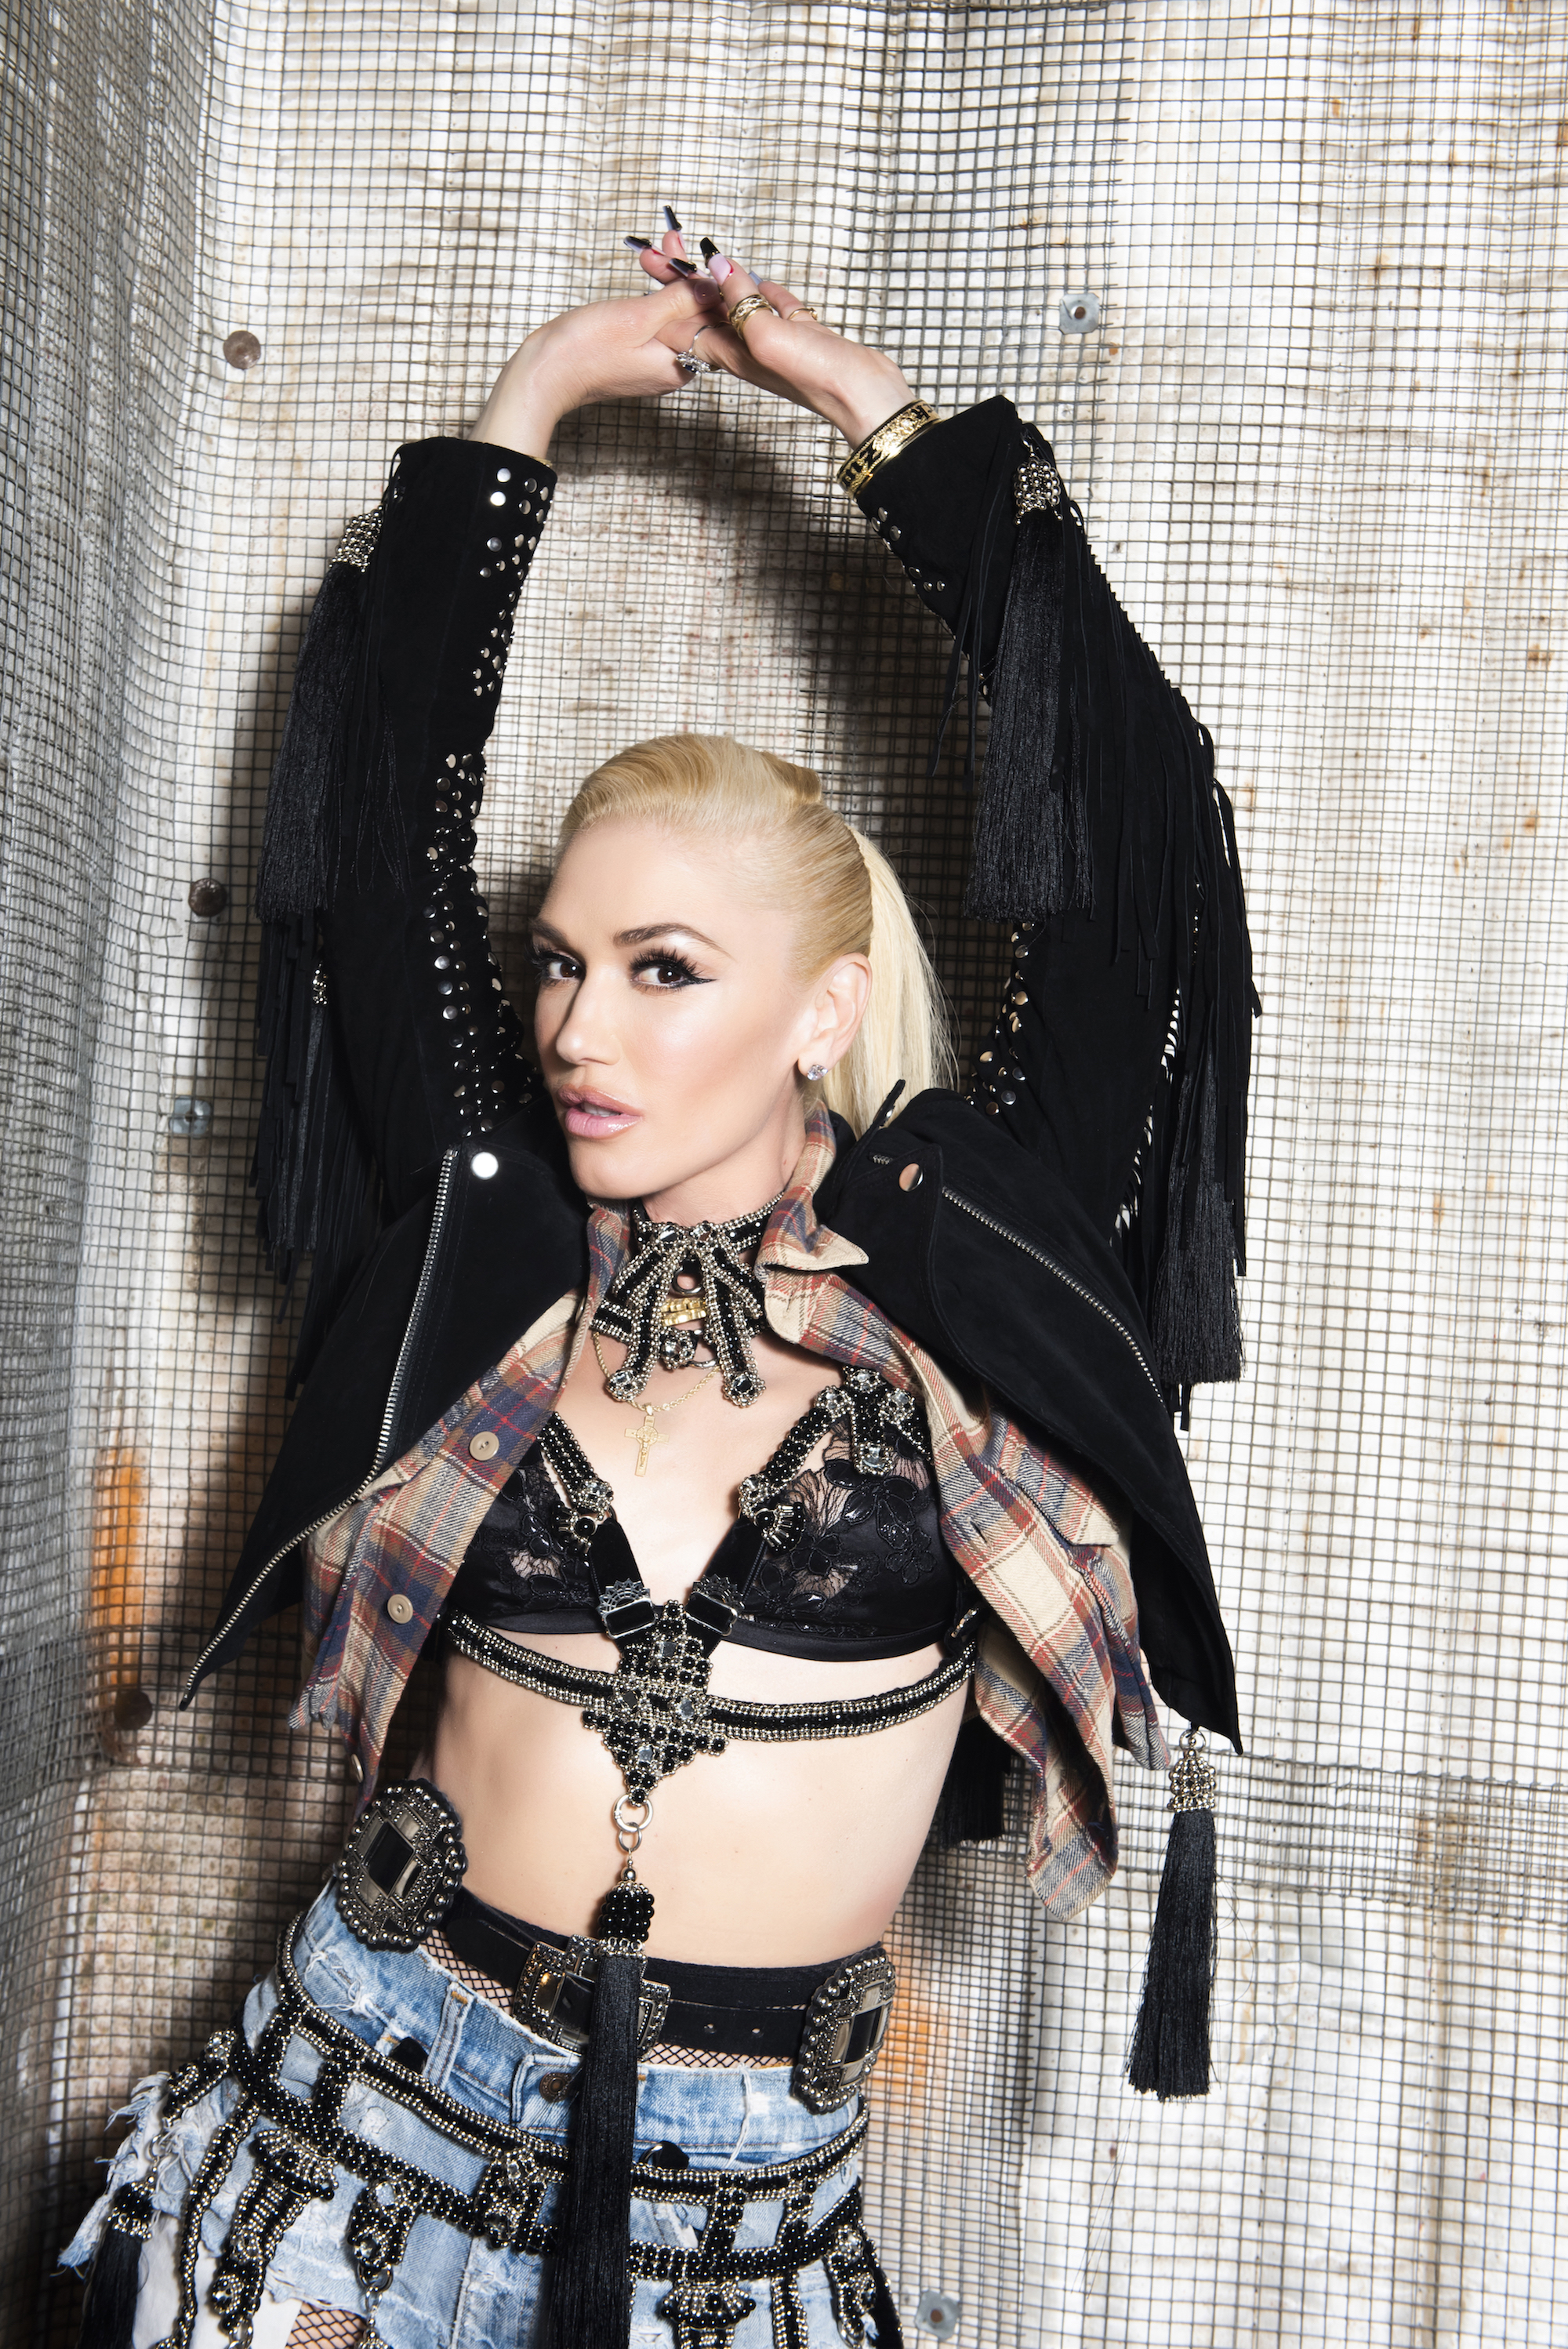 Gwen Stefani video image by Lindsey Byrnes